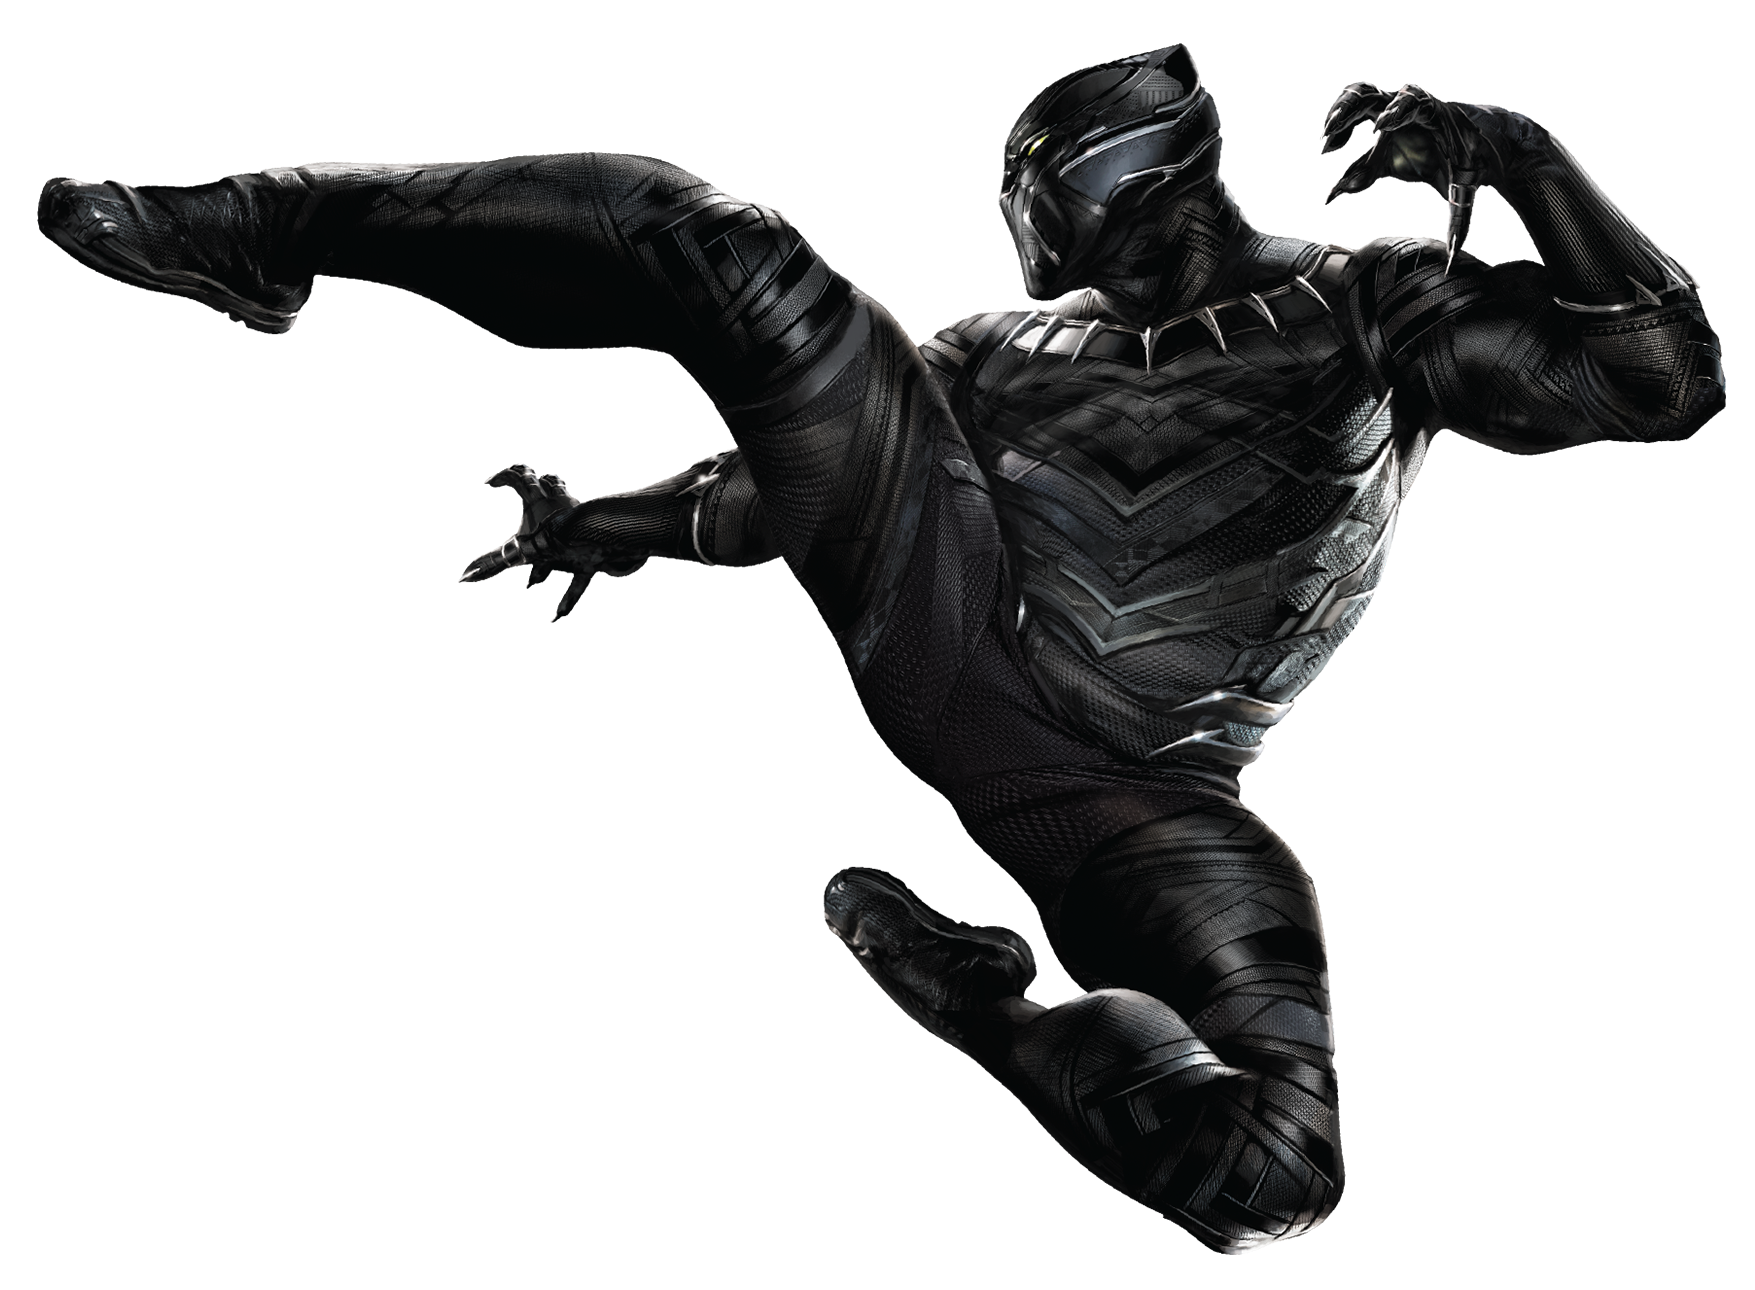 Black panther movie logo png. Image cw kick render